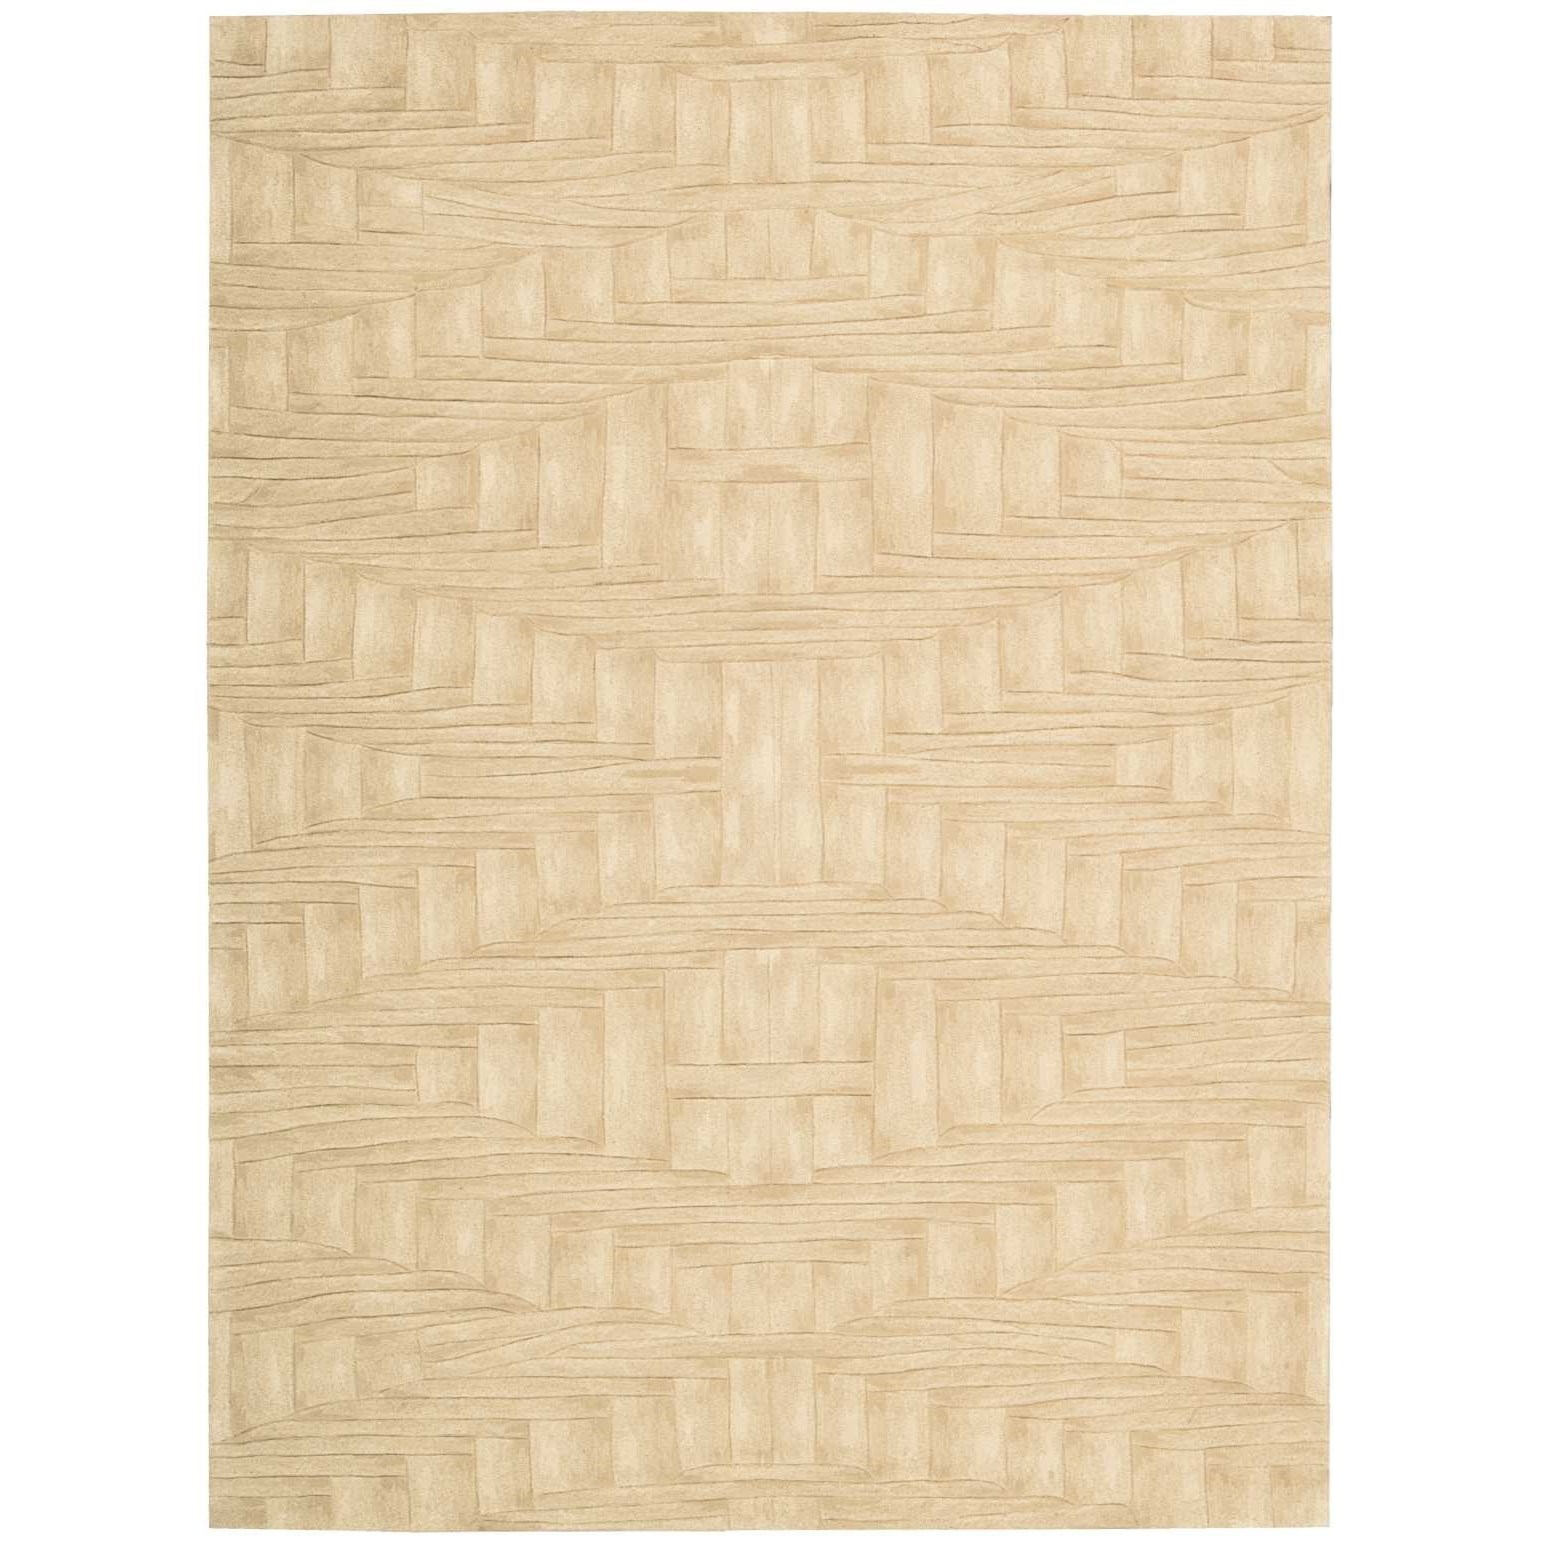 """Moda 3'6"""" x 5'6"""" Shell Rectangle Rug by Nourison at Home Collections Furniture"""